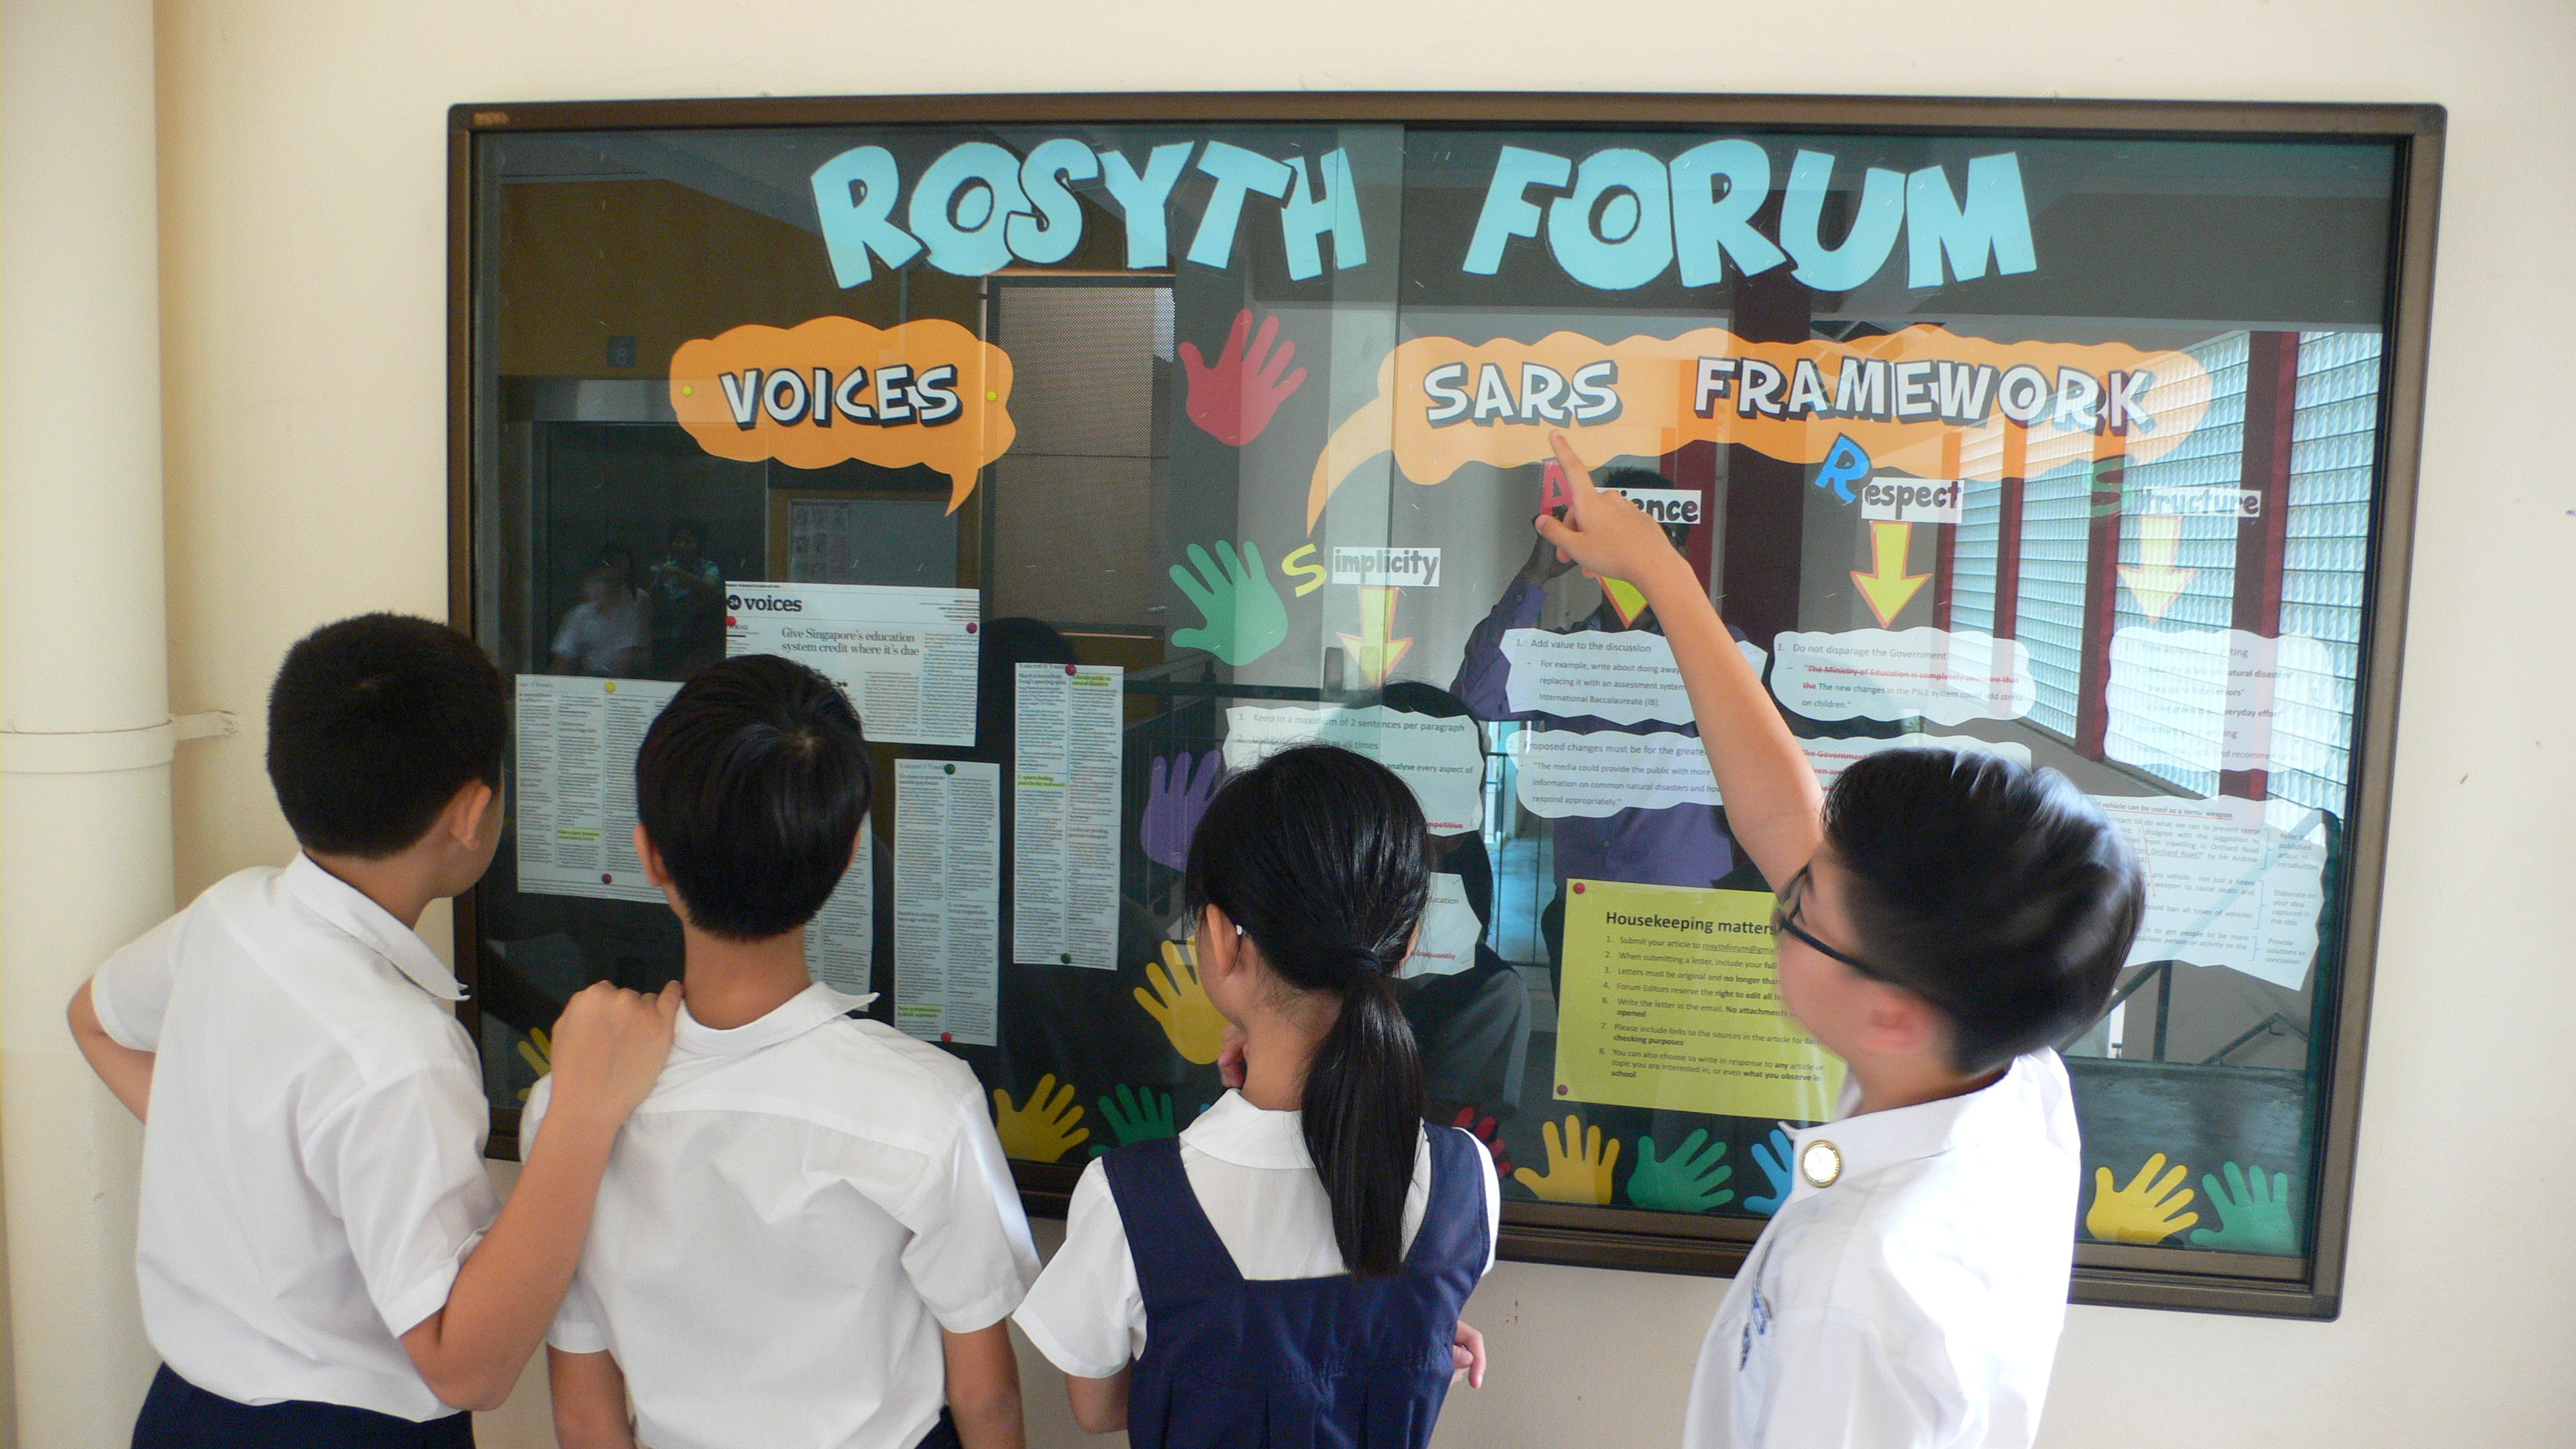 The Rosyth Forum where students can write into to air their views on current affairs